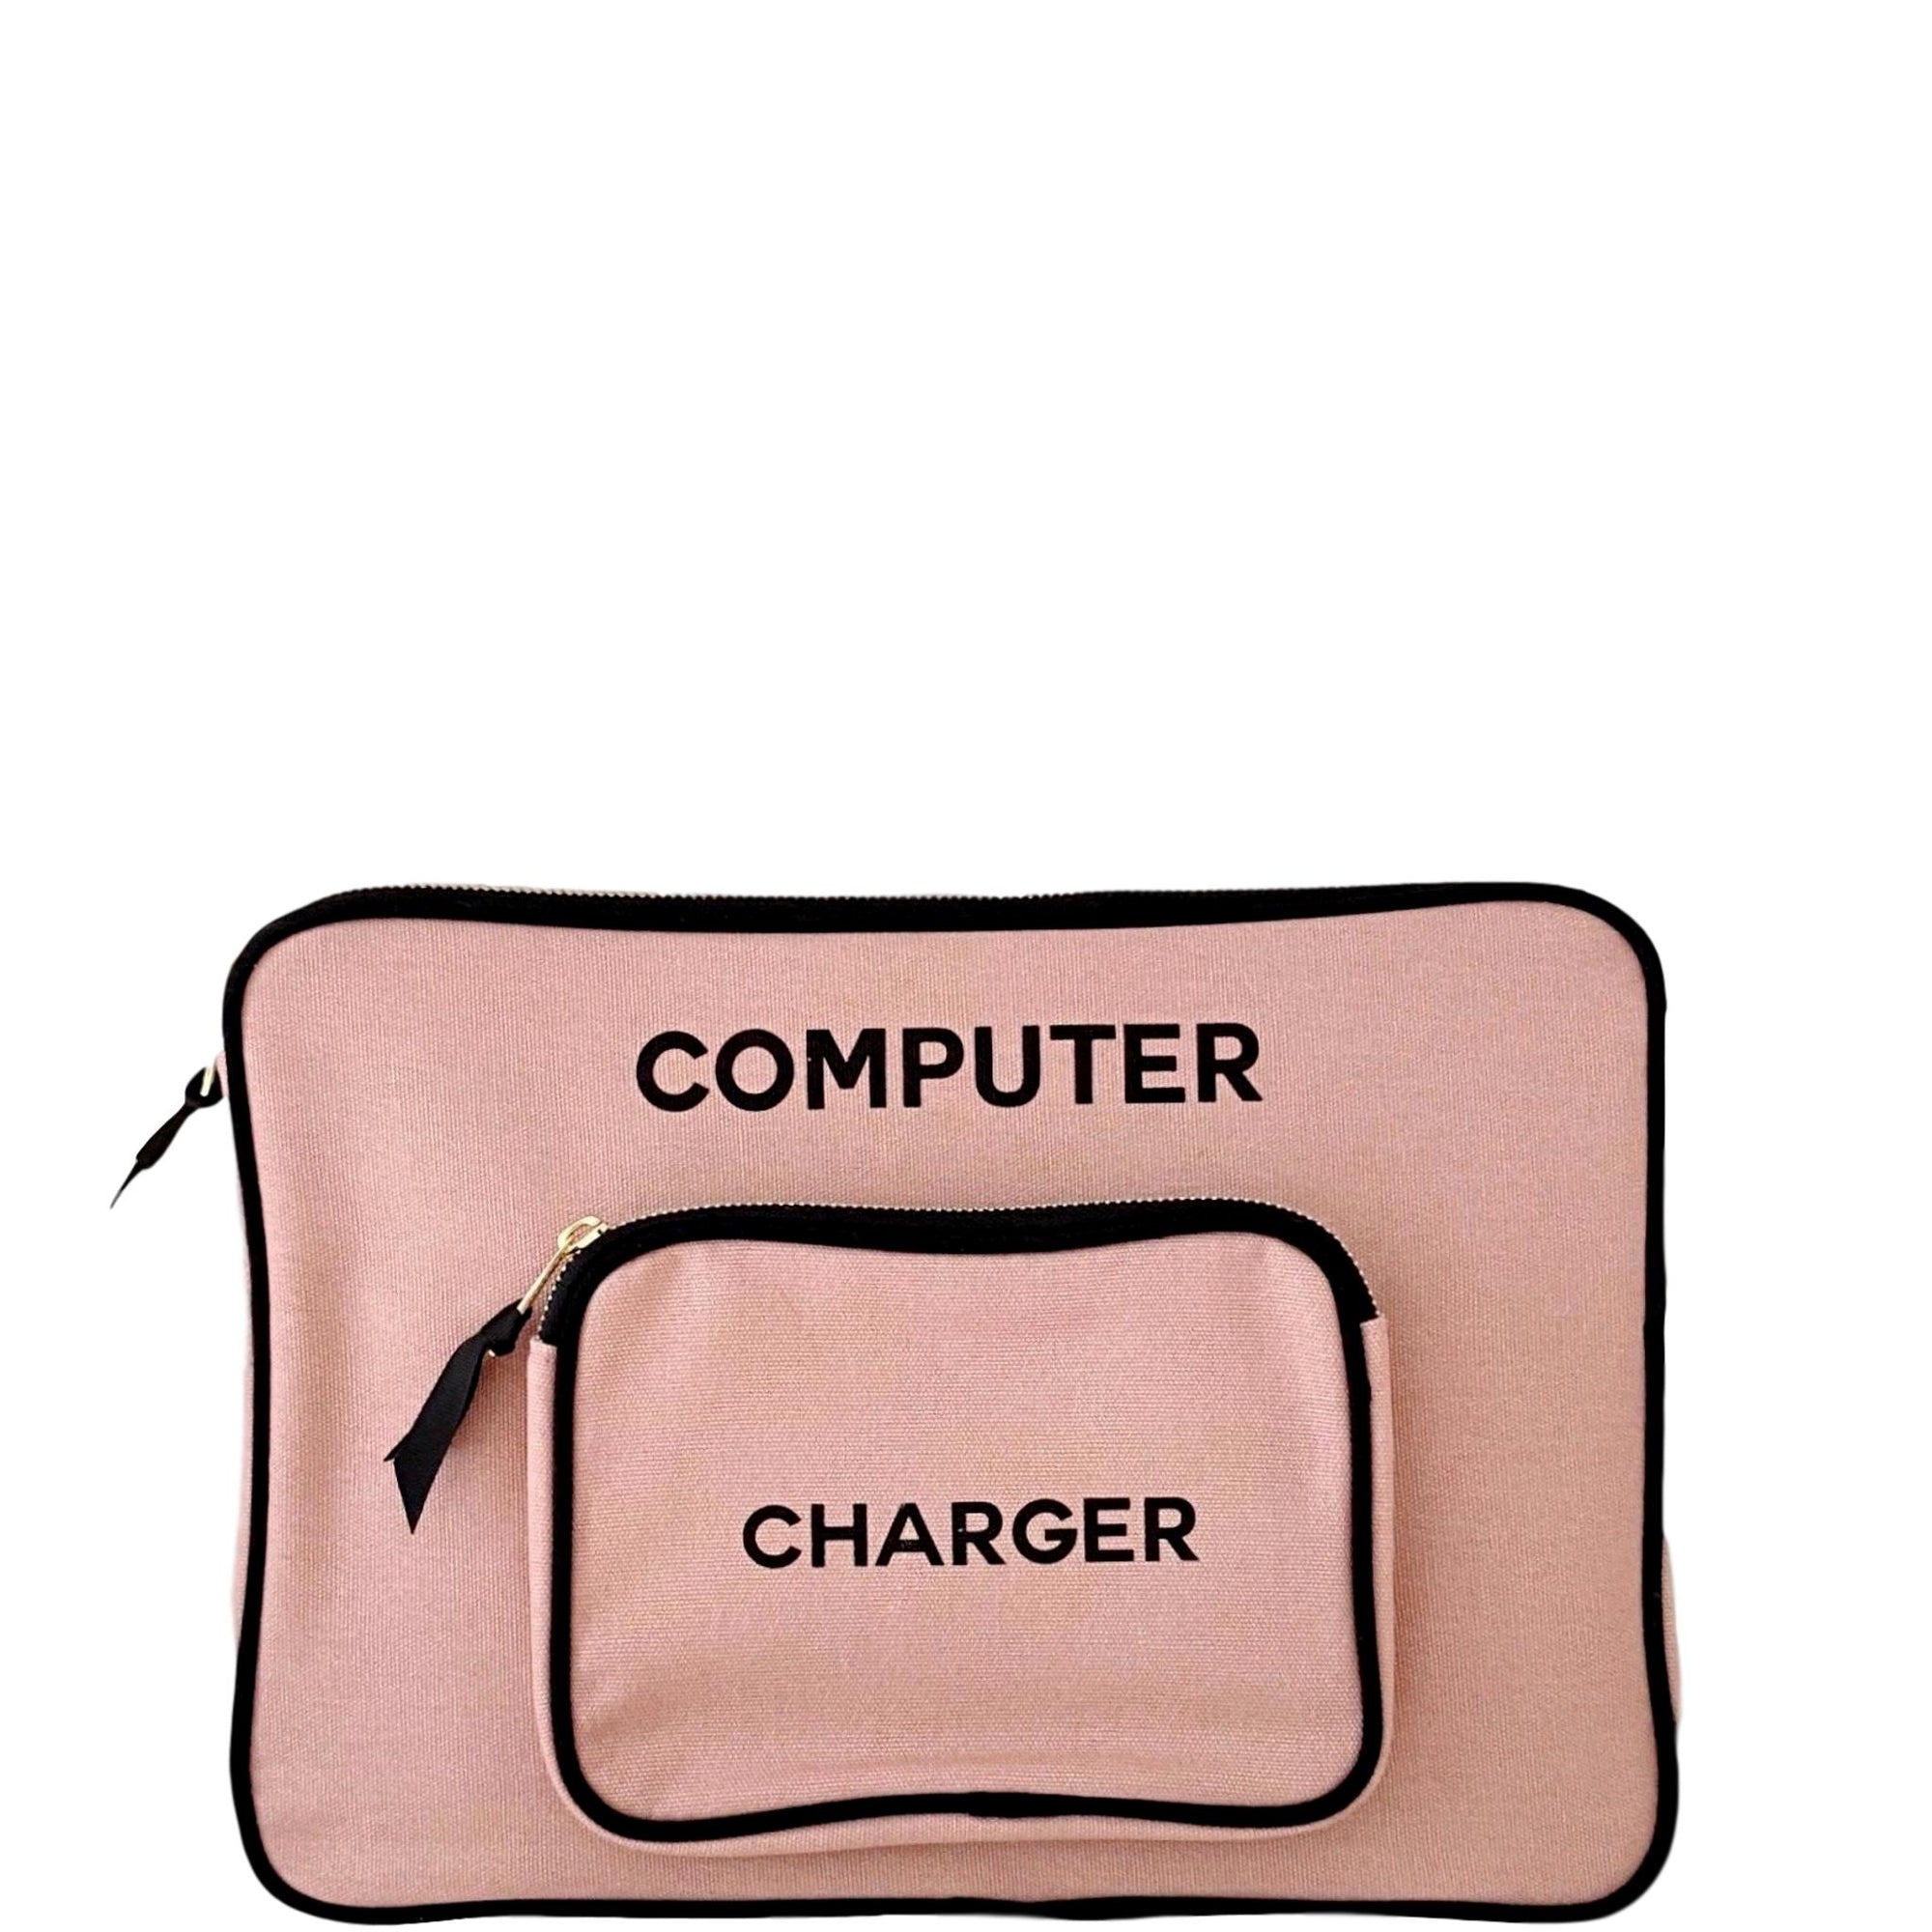 Pink computer case with an attached charger pocket.